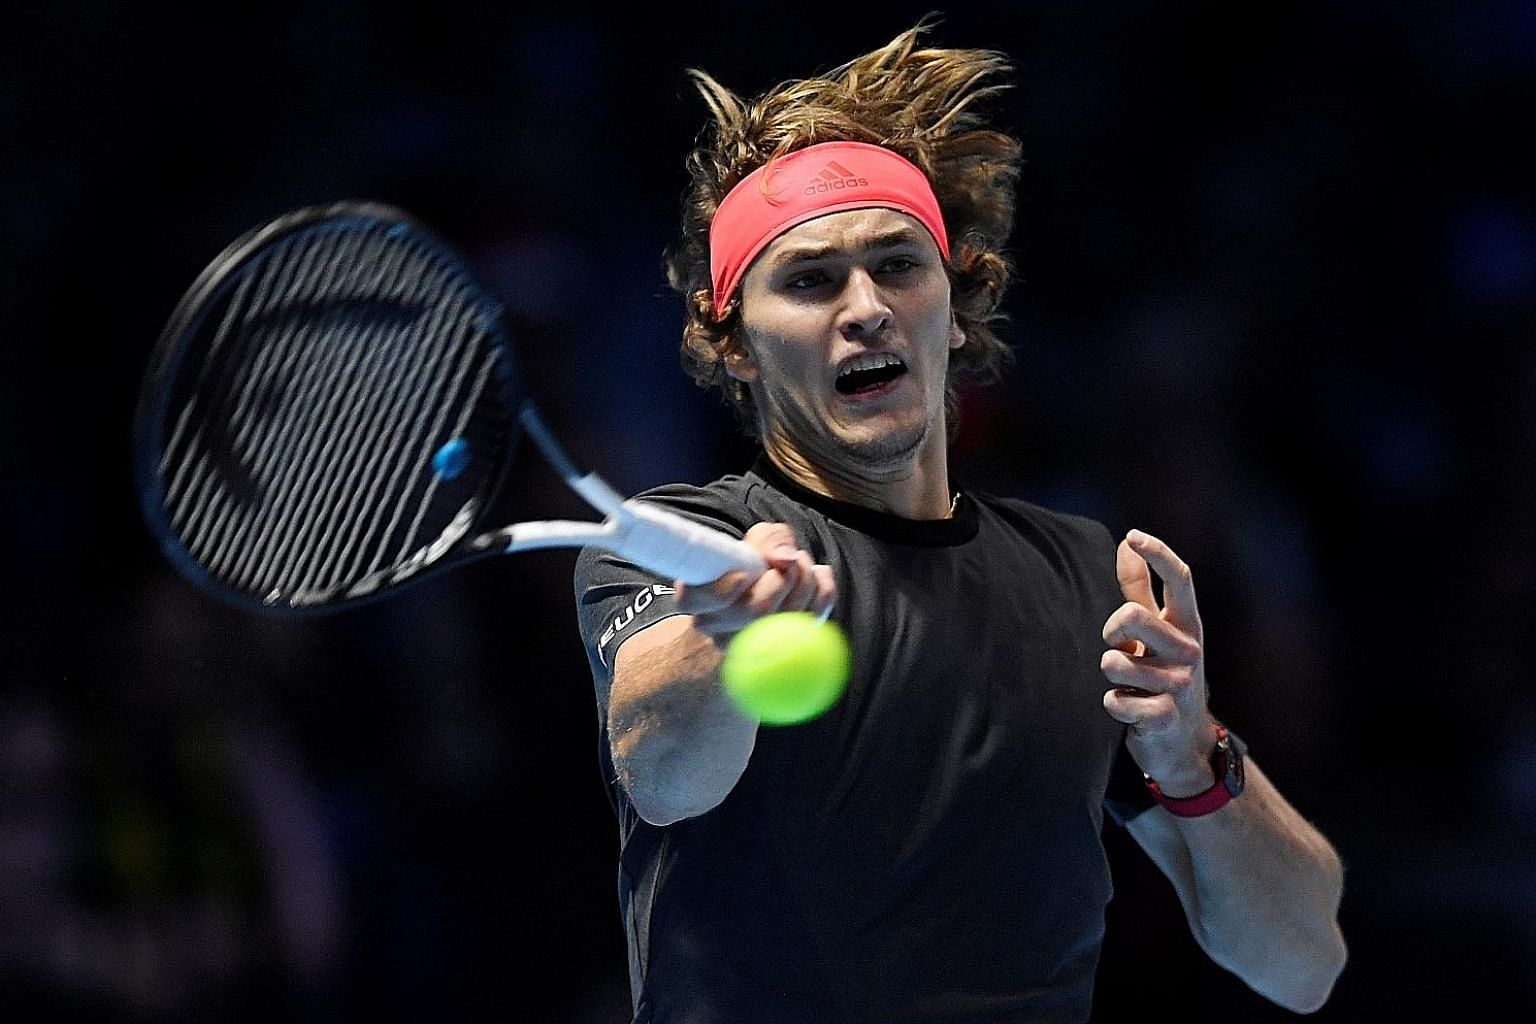 Germany's Alexander Zverev hitting a forehand during yesterday's semi-final against Switzerland's Roger Federer, whom he defeated 7-5, 7-6 (7-5).